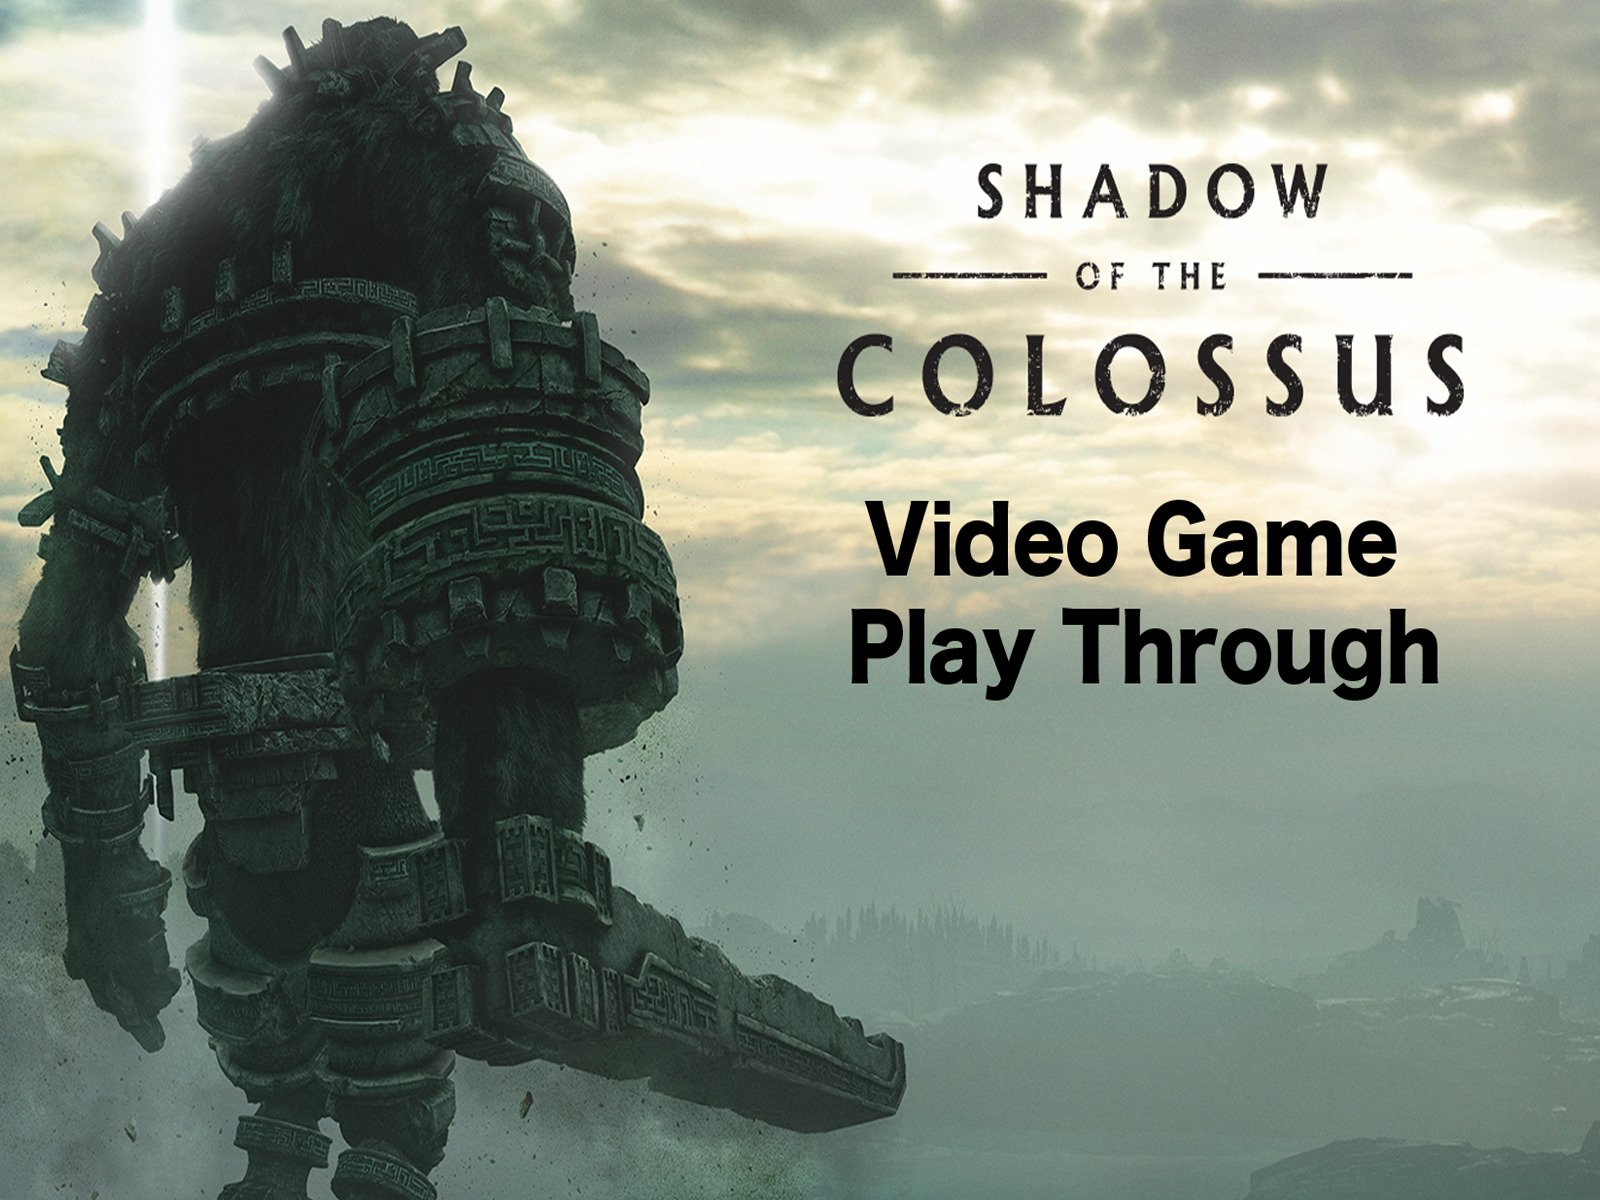 Clip: Shadow of the Colossus Video Game Play Through - Season 1